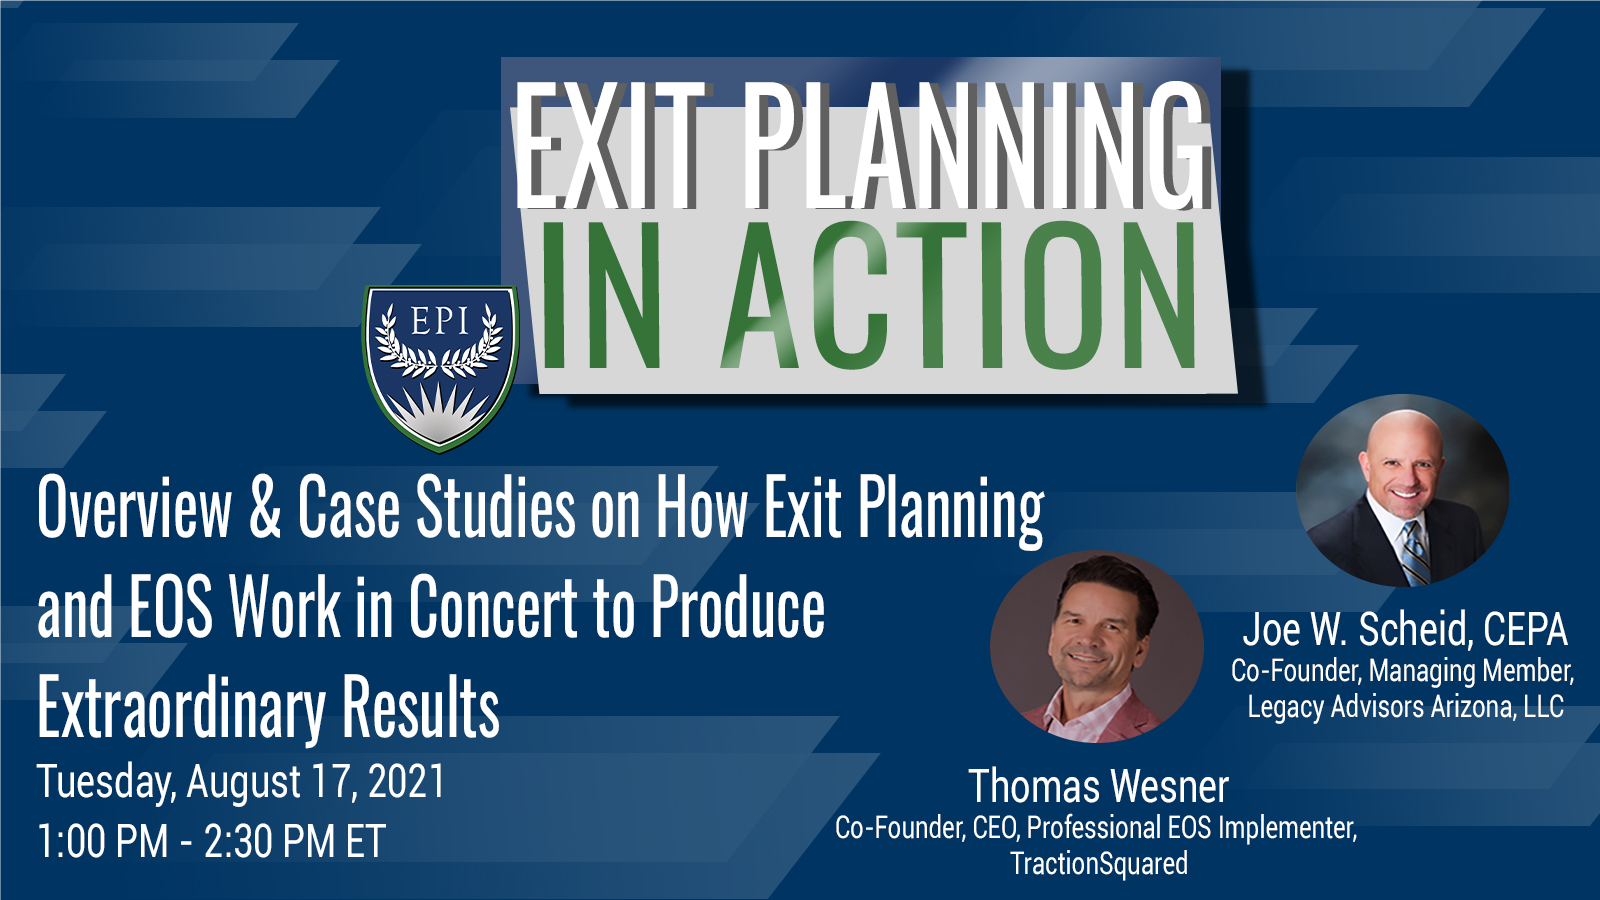 Overview & Case Studies on Exit Planning and EOS